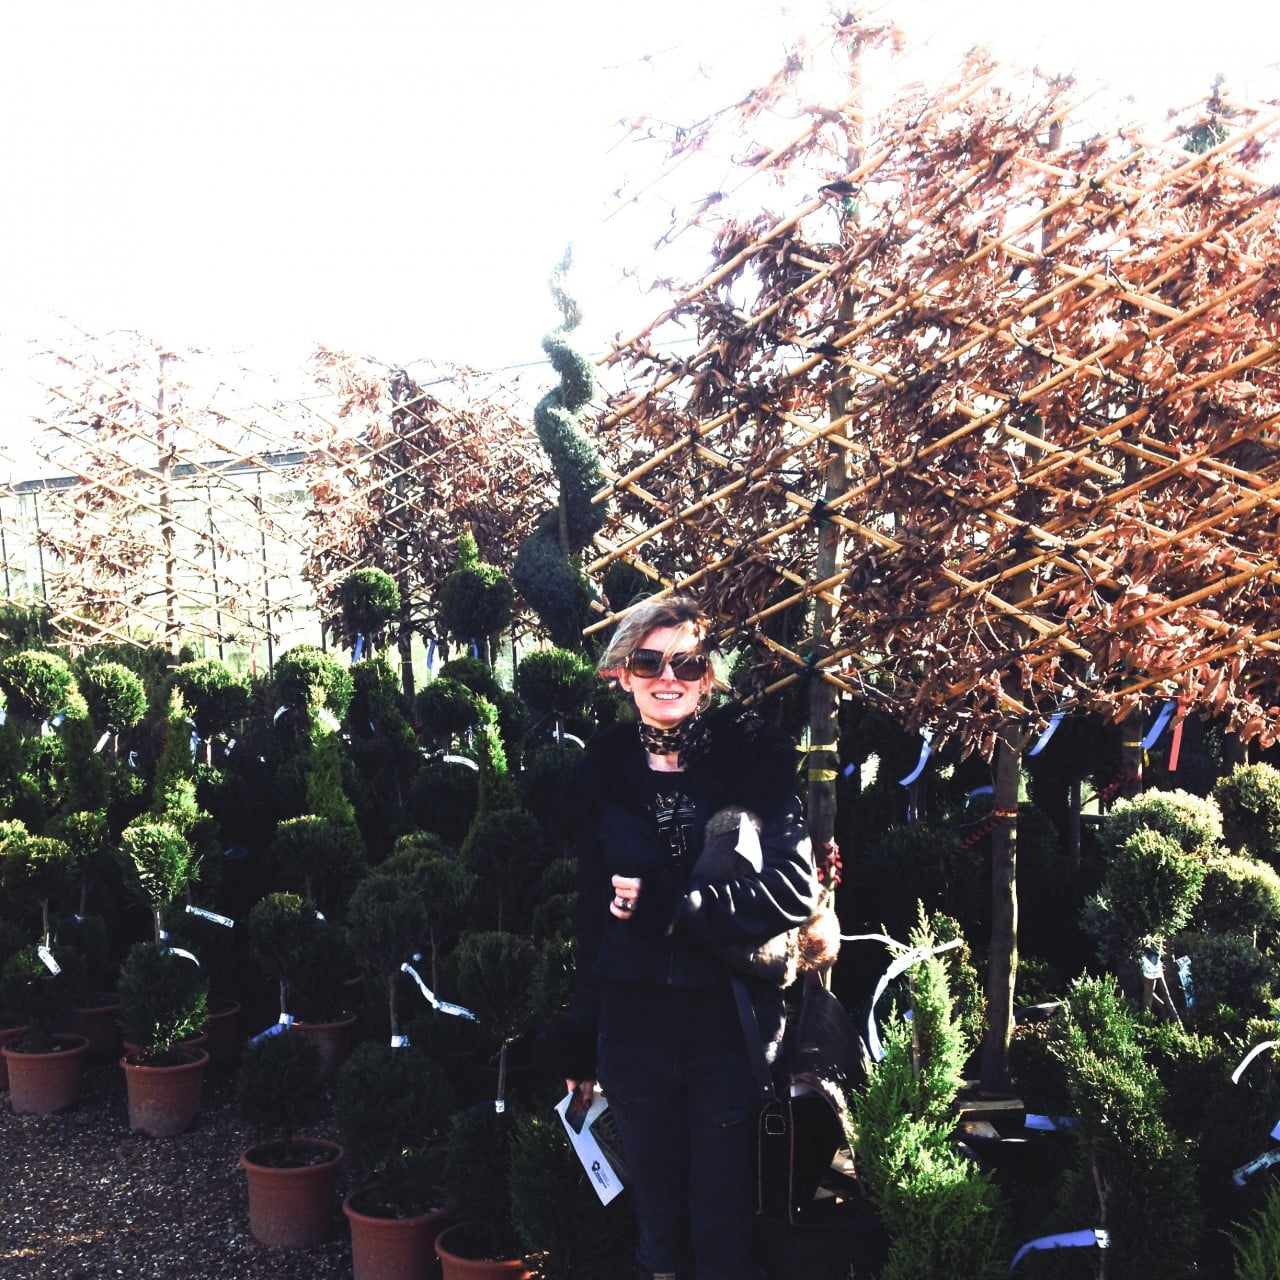 This is me at Europlants trade nursery buying pleached hornbeams for one of my clients. We were buying potted trees that day which means they can be planted at any time of the year.